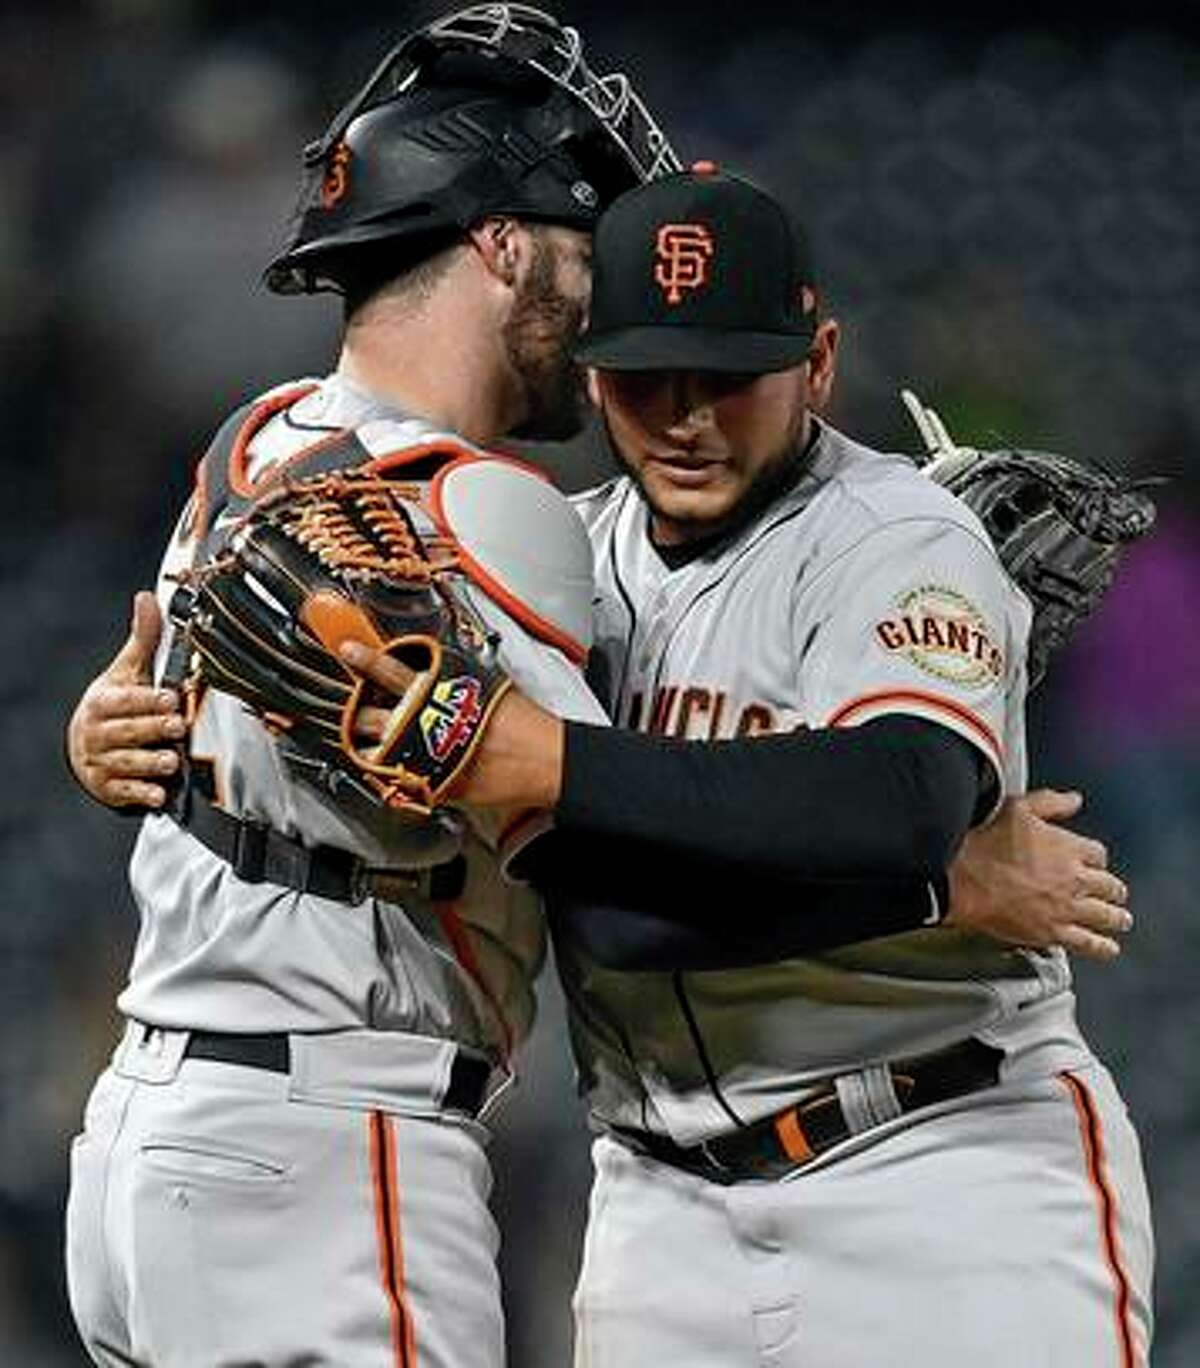 DENVER, CO - SEPTEMBER 7: Kervin Castro #76 and Curt Casali #2 of the San Francisco Giants celebrate after a 12-3 win over the Colorado Rockies at Coors Field on September 7, 2021 in Denver, Colorado. (Photo by Dustin Bradford/Getty Images)